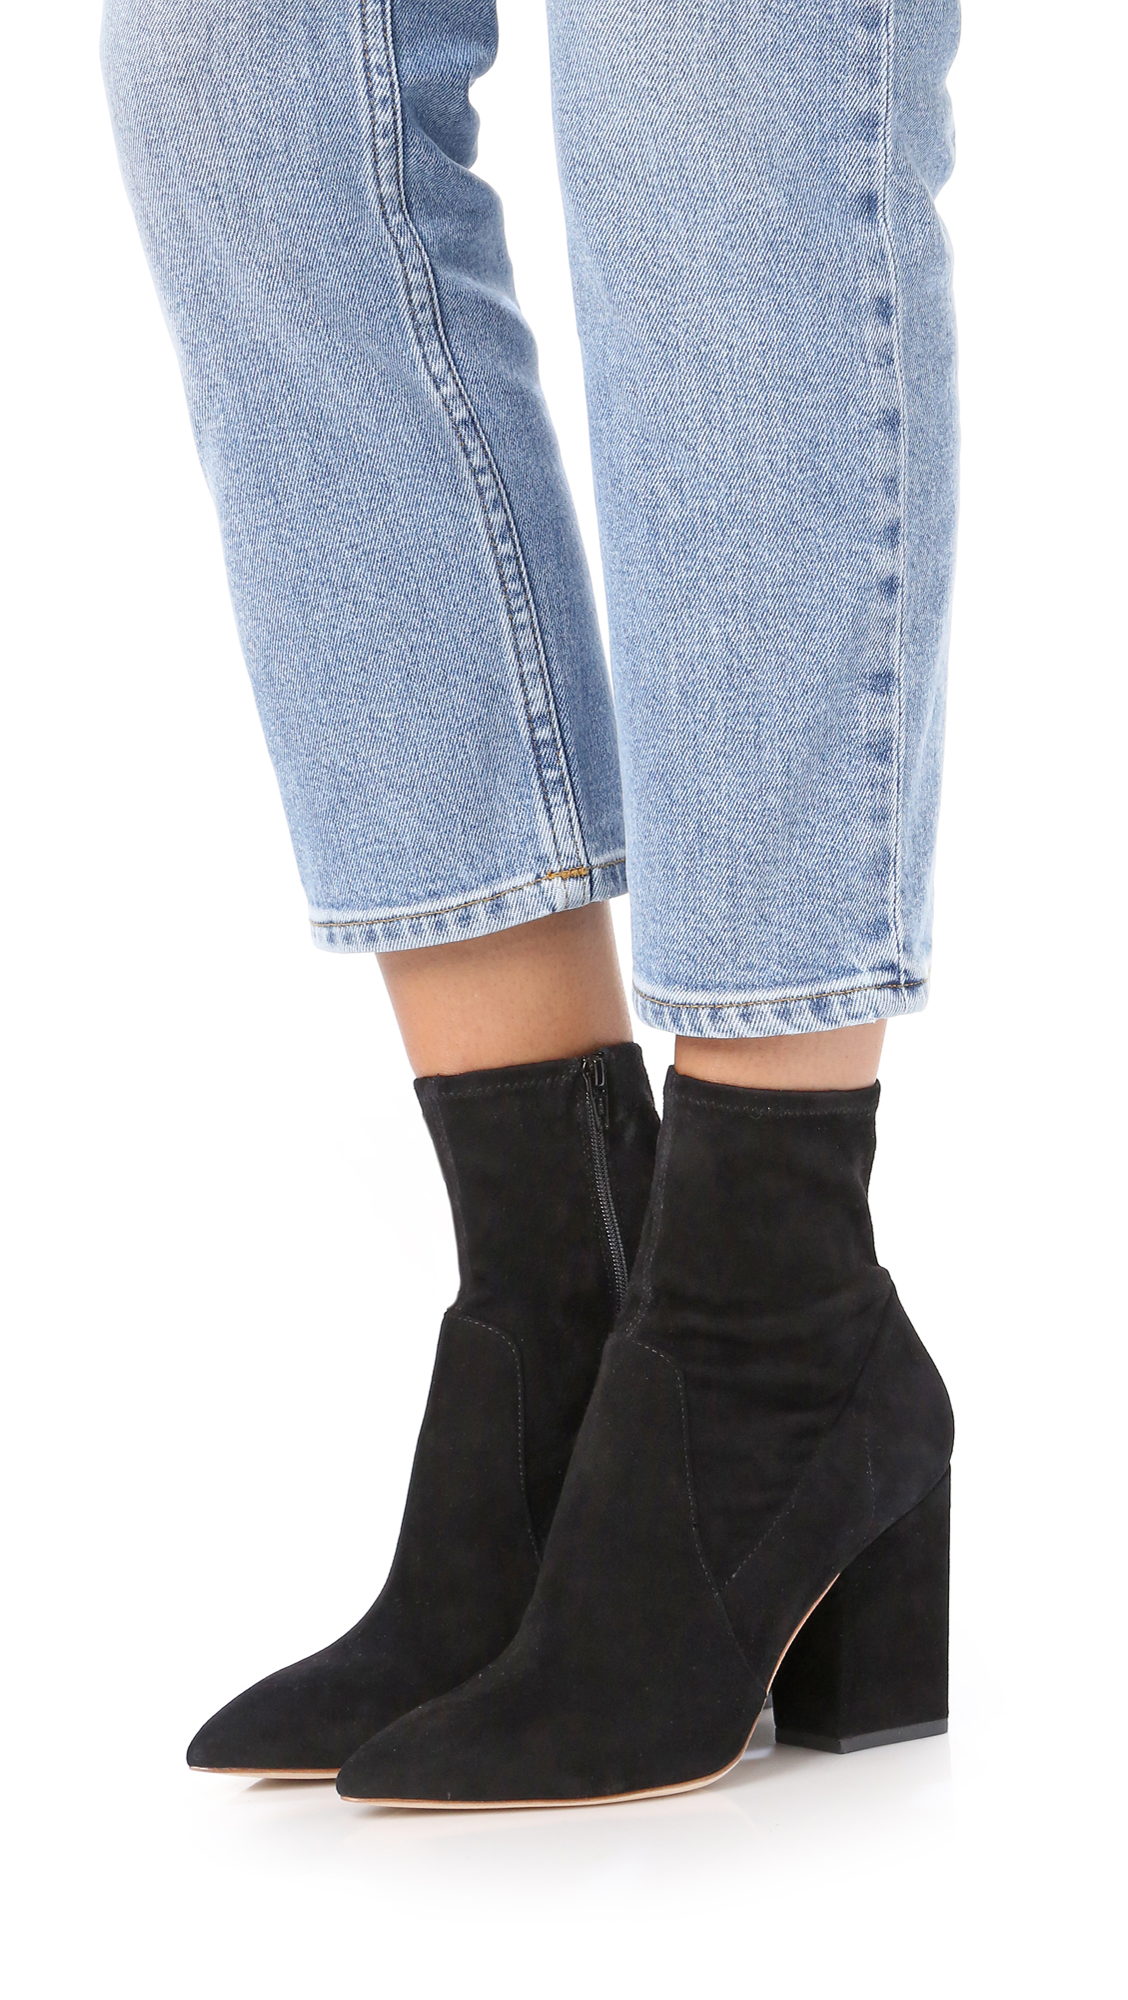 Loeffler Randall Pointed-Toe Suede Booties outlet clearance store sale for cheap u8UUcJA